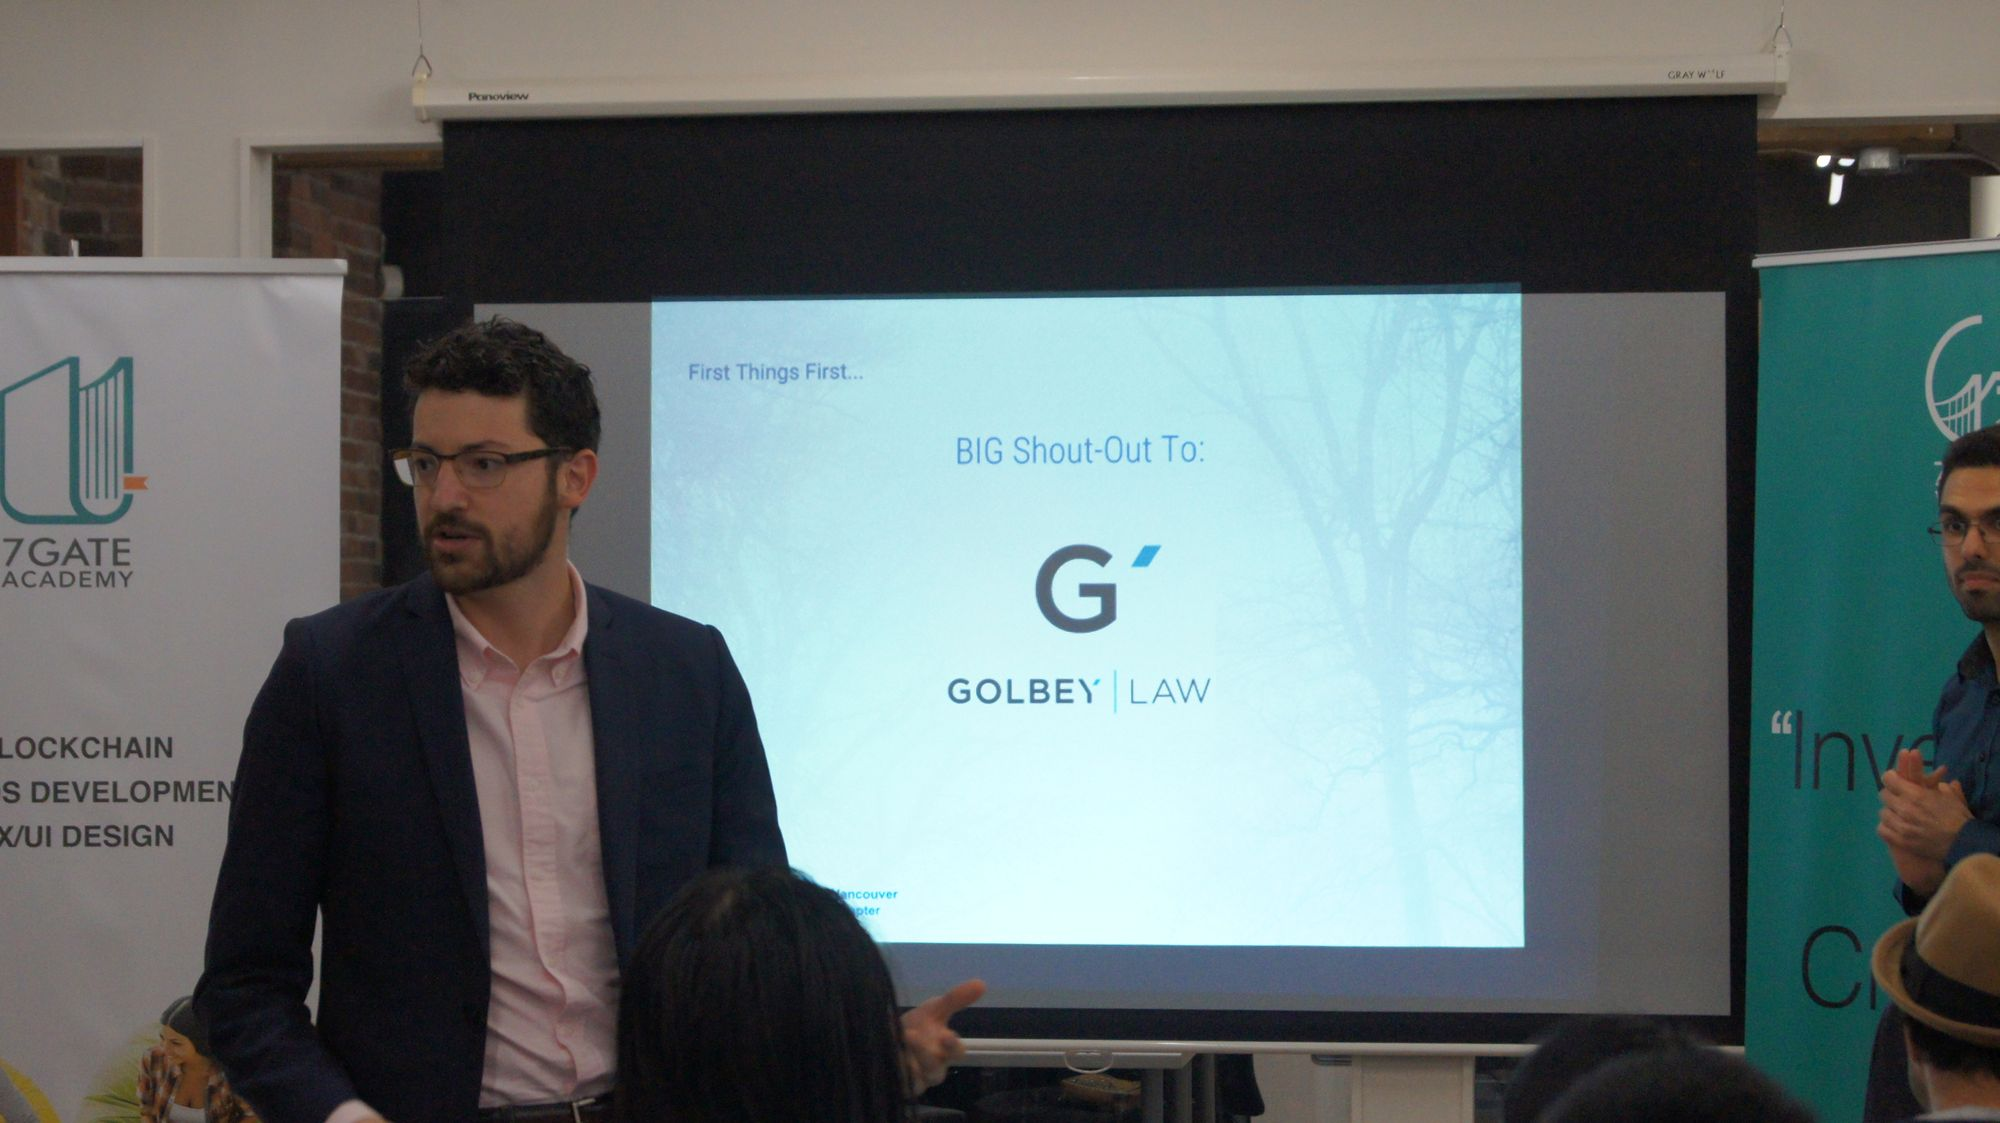 Justin gives an introduction about Golbey Law and wishes everyone good luck.